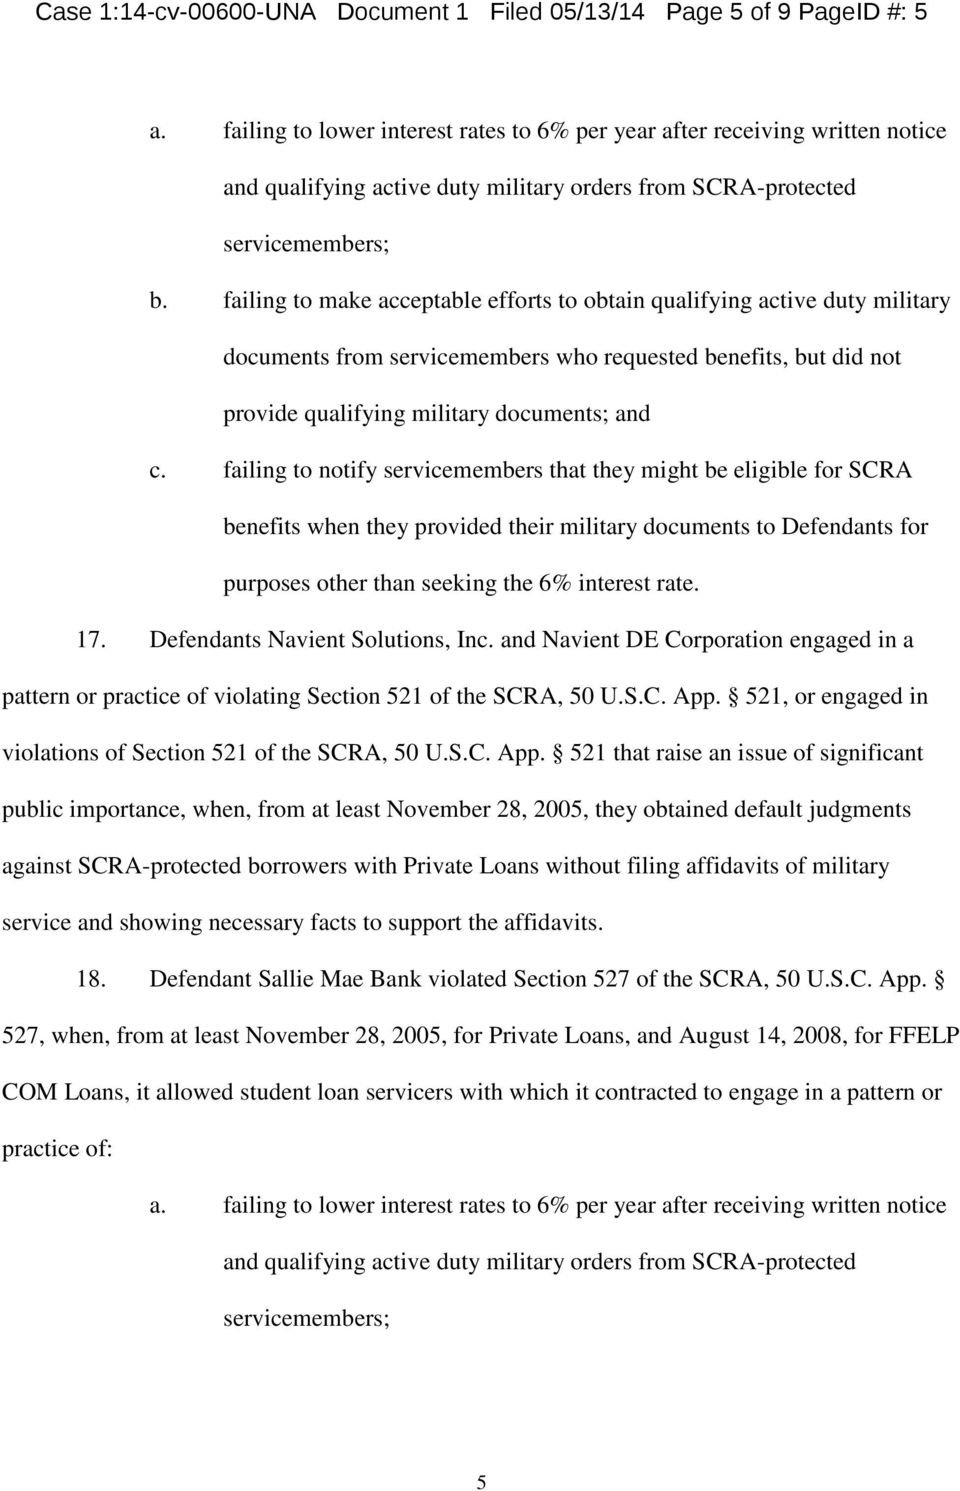 failing to make acceptable efforts to obtain qualifying active duty military documents from servicemembers who requested benefits, but did not provide qualifying military documents; and c.